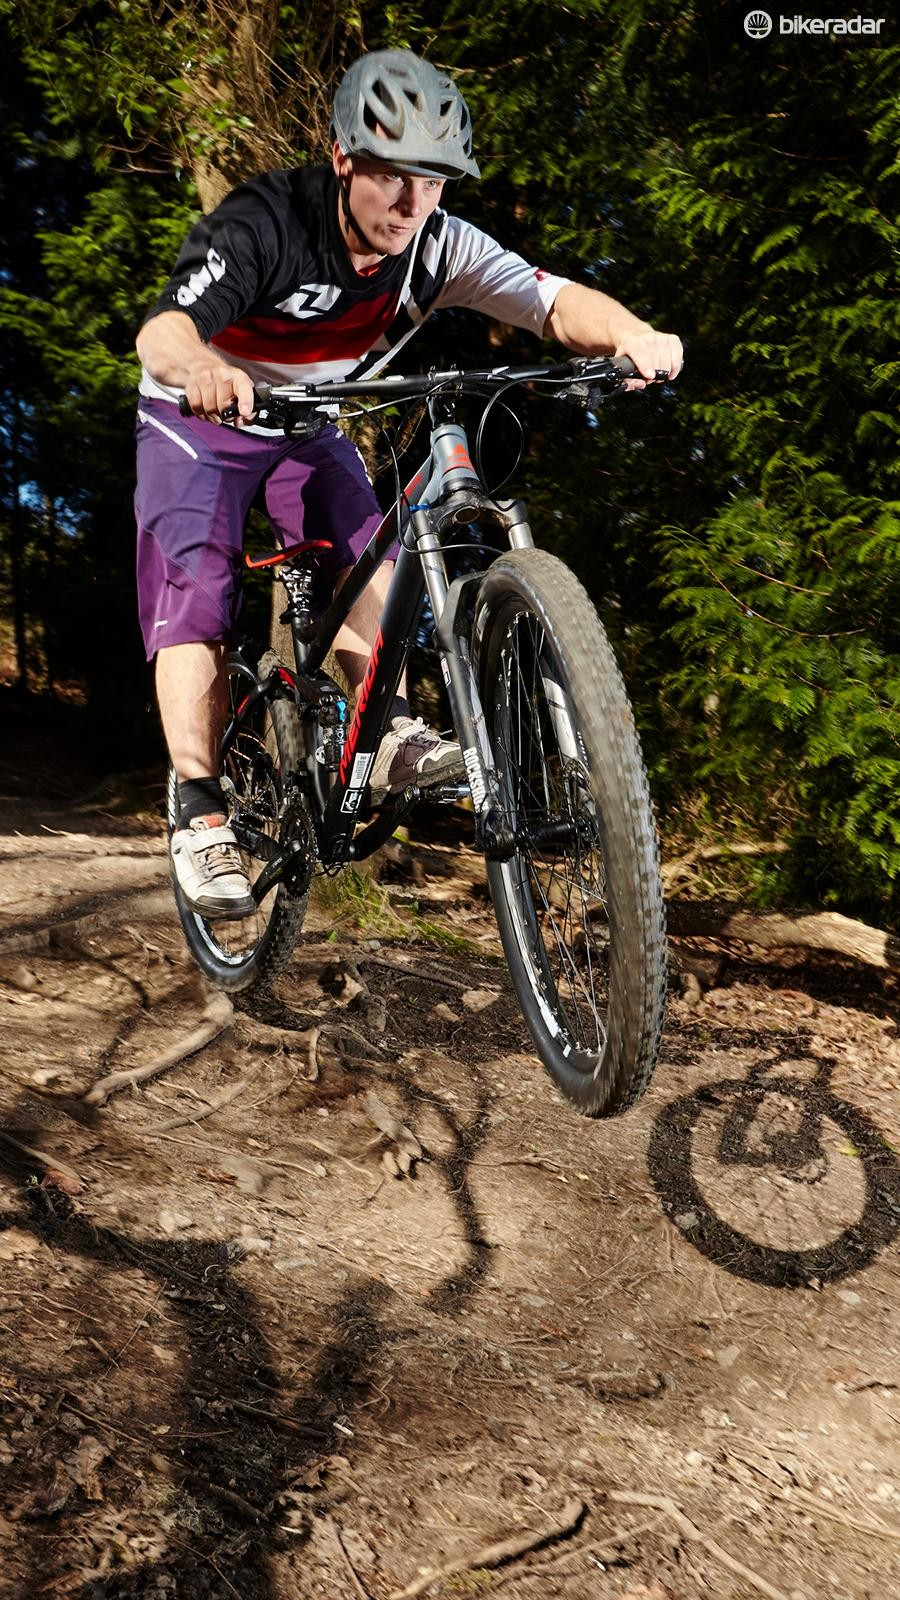 The Merida is impressively stable and competent on fast, rough descents, though the basic fork limits its downhill performance